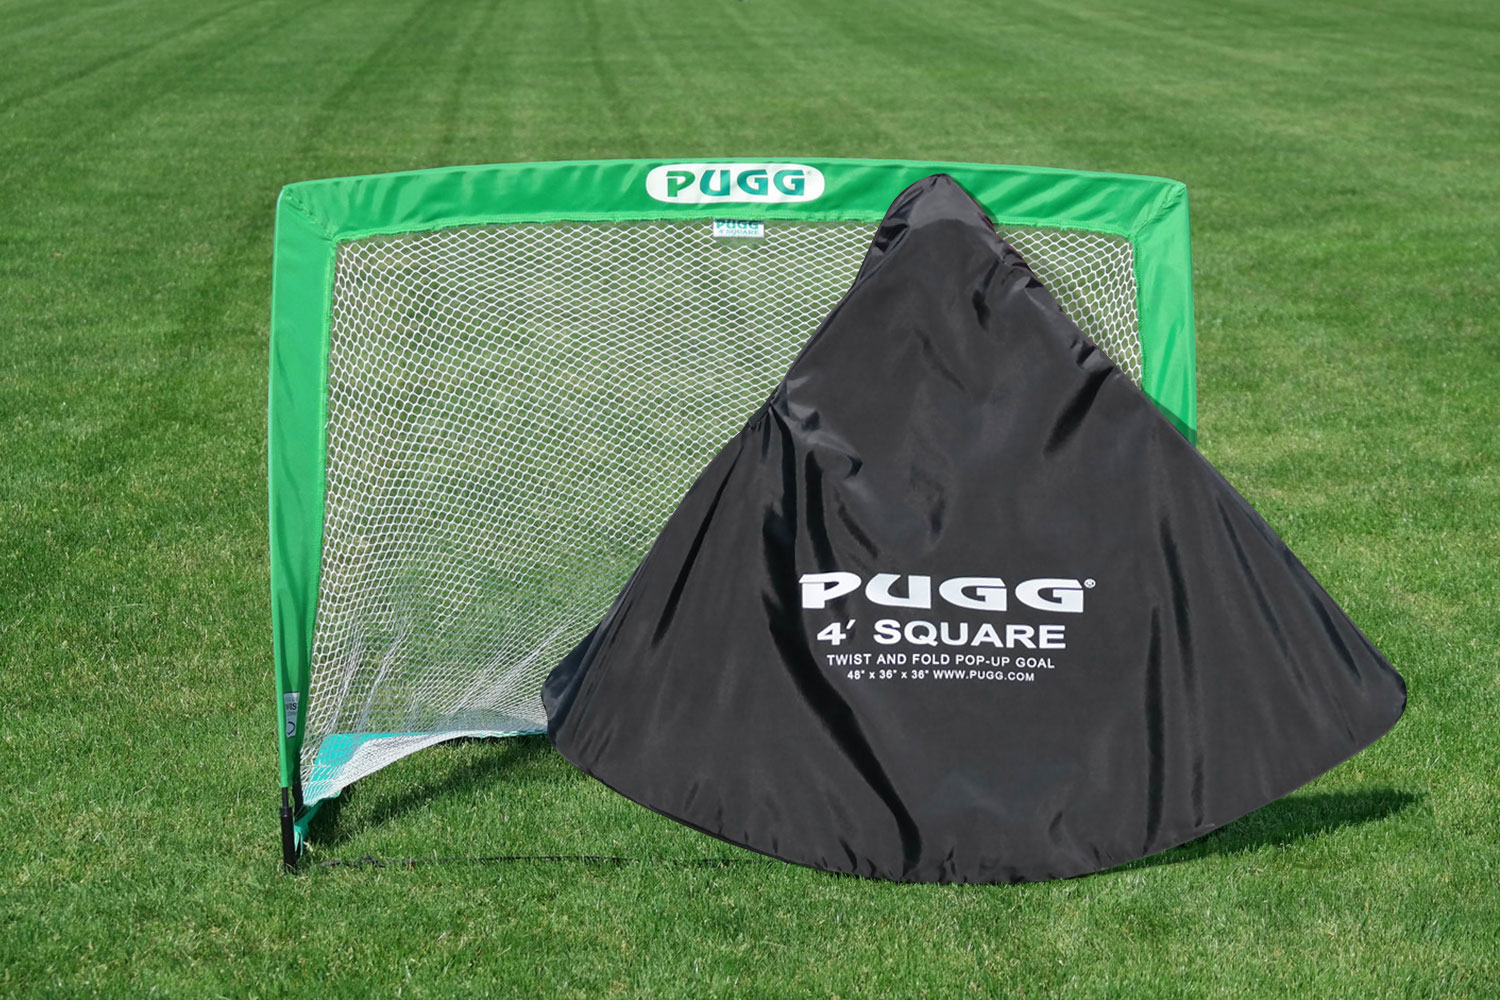 Pugg U90 4 Footer Pop-Up (Single)